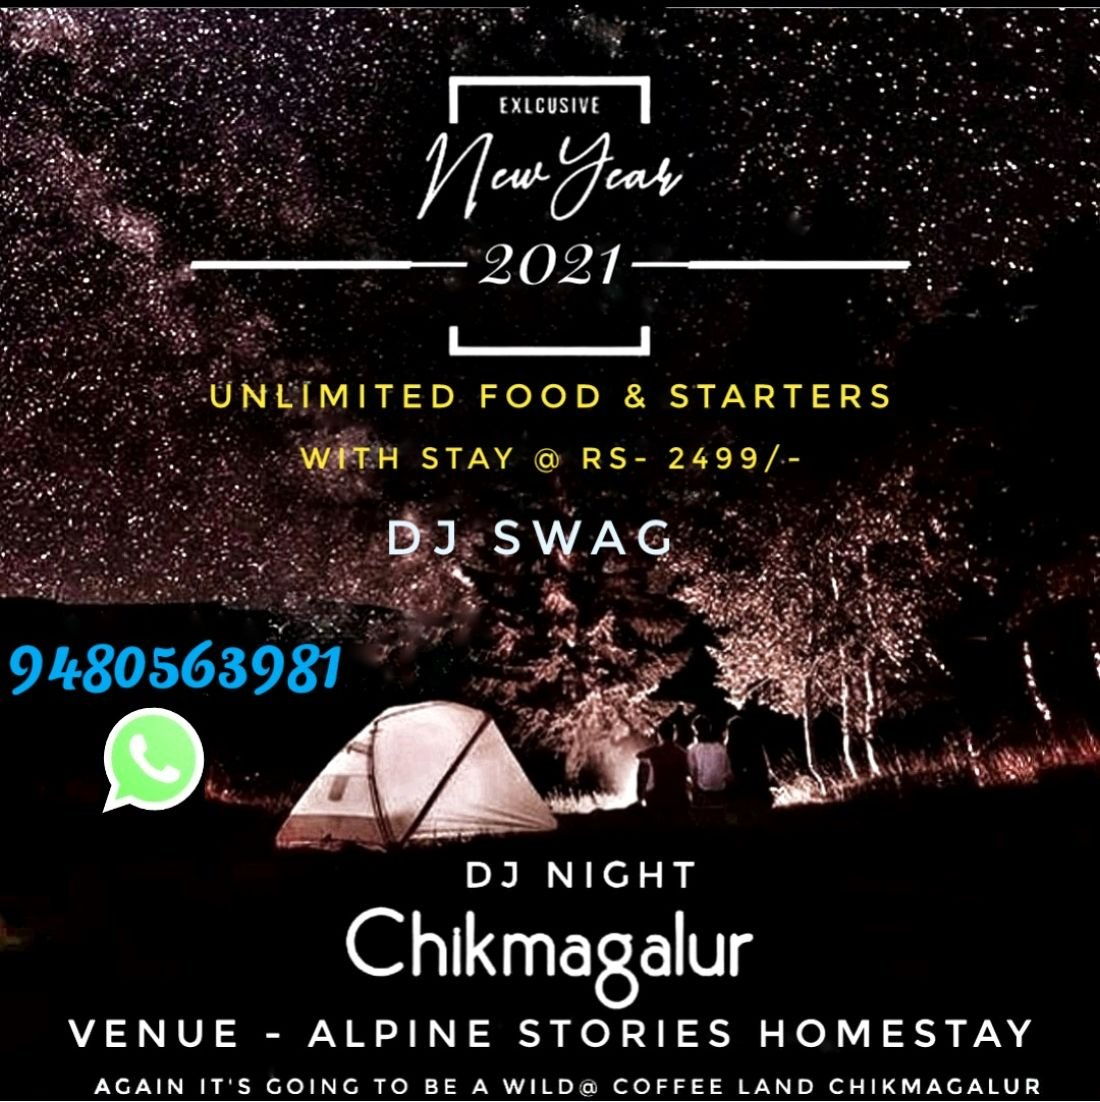 New Year 12 Celebration At Chikmagalur, ALPINE STORIES HOMESTAY